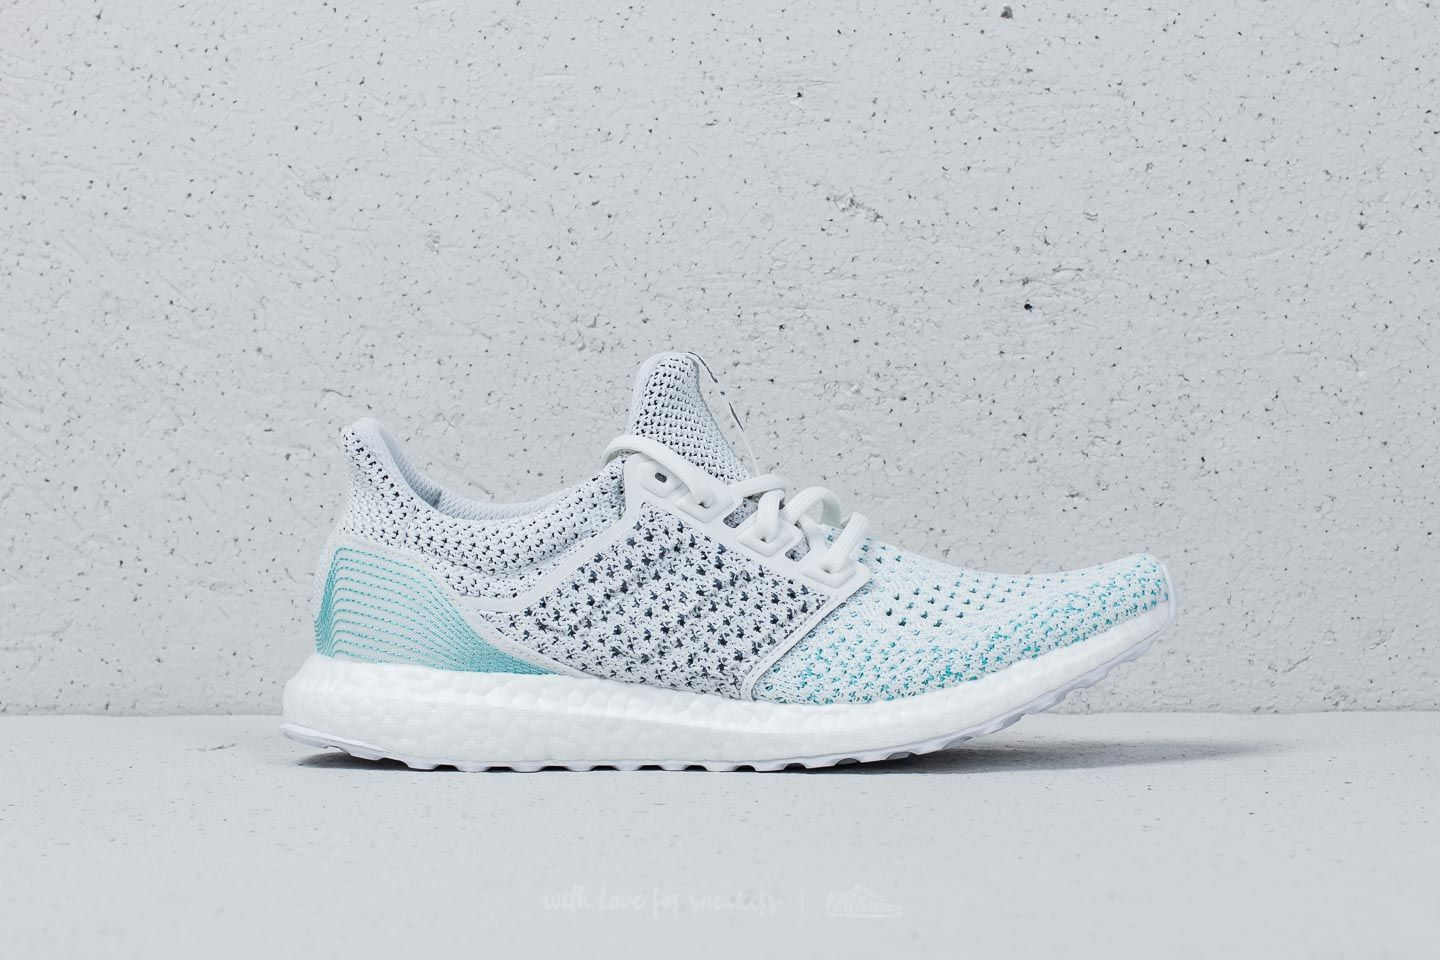 premium selection 2fbbc 8a329 adidas x Parley Ultraboost LTD Ftw White Ftw White Blue Spirit at a great